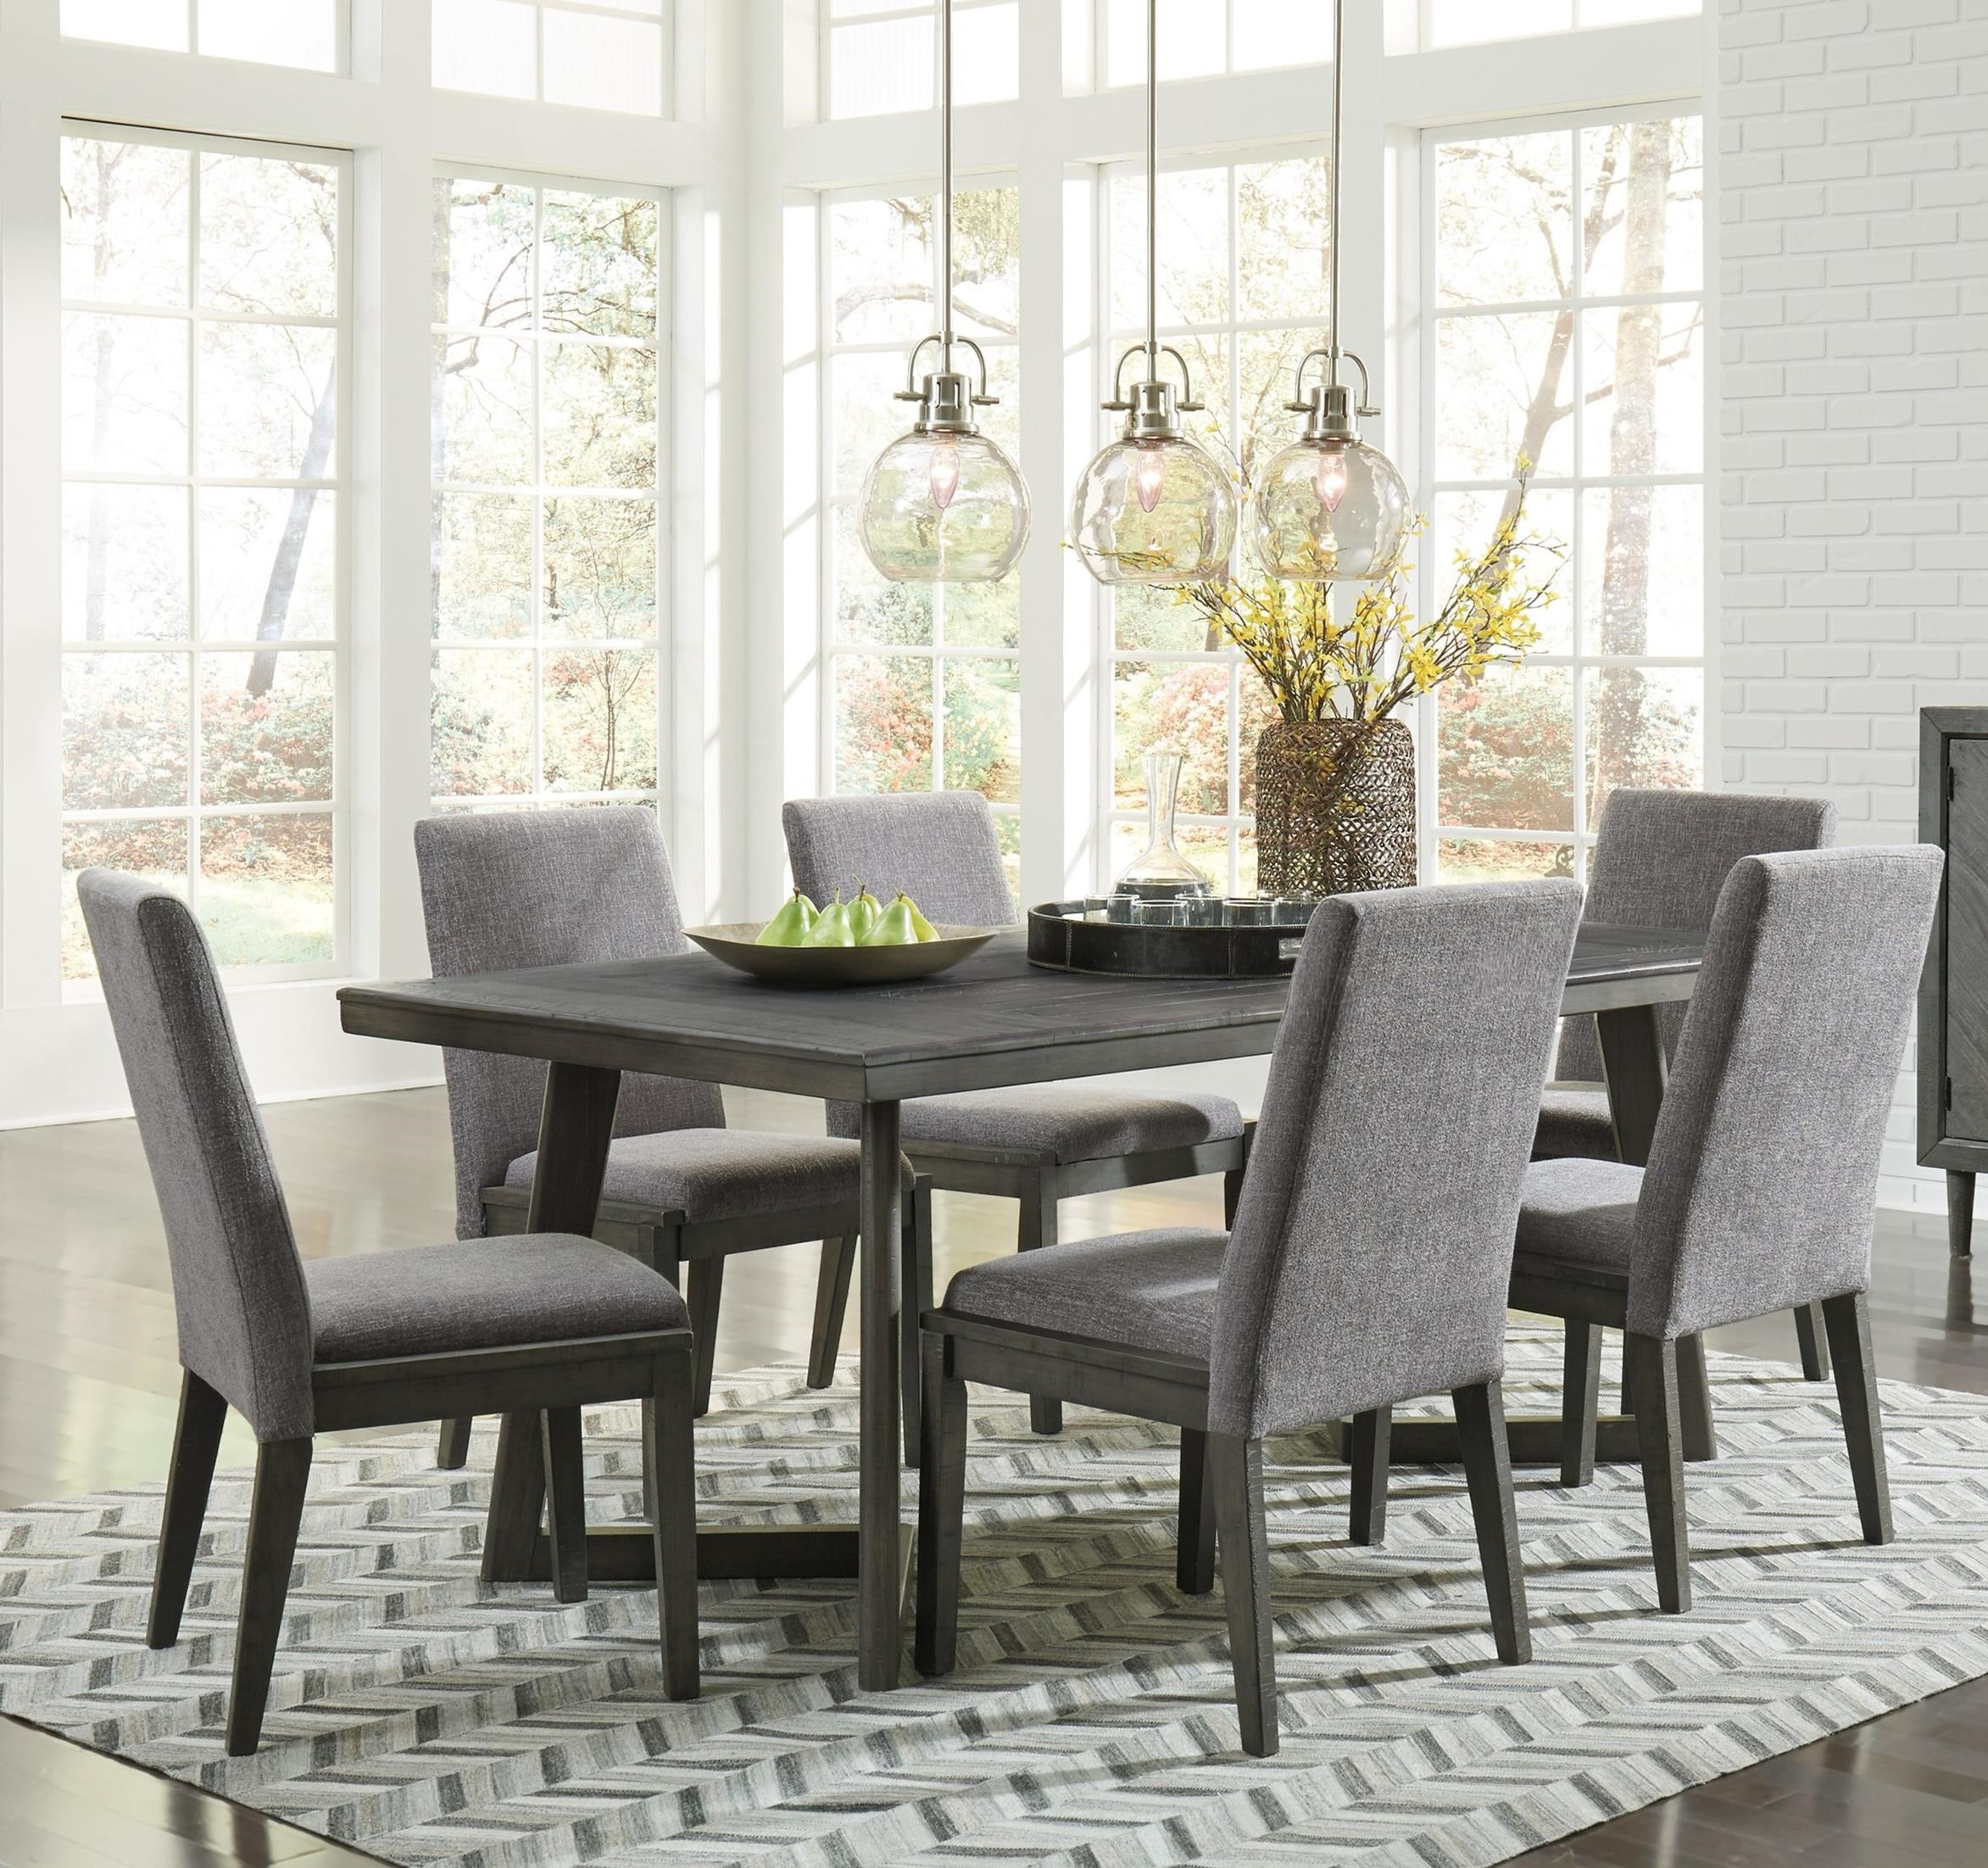 Signature Design By Ashley Besteneer Formal Dining Room: Signature Design By Ashley Besteneer D568-25+6x01